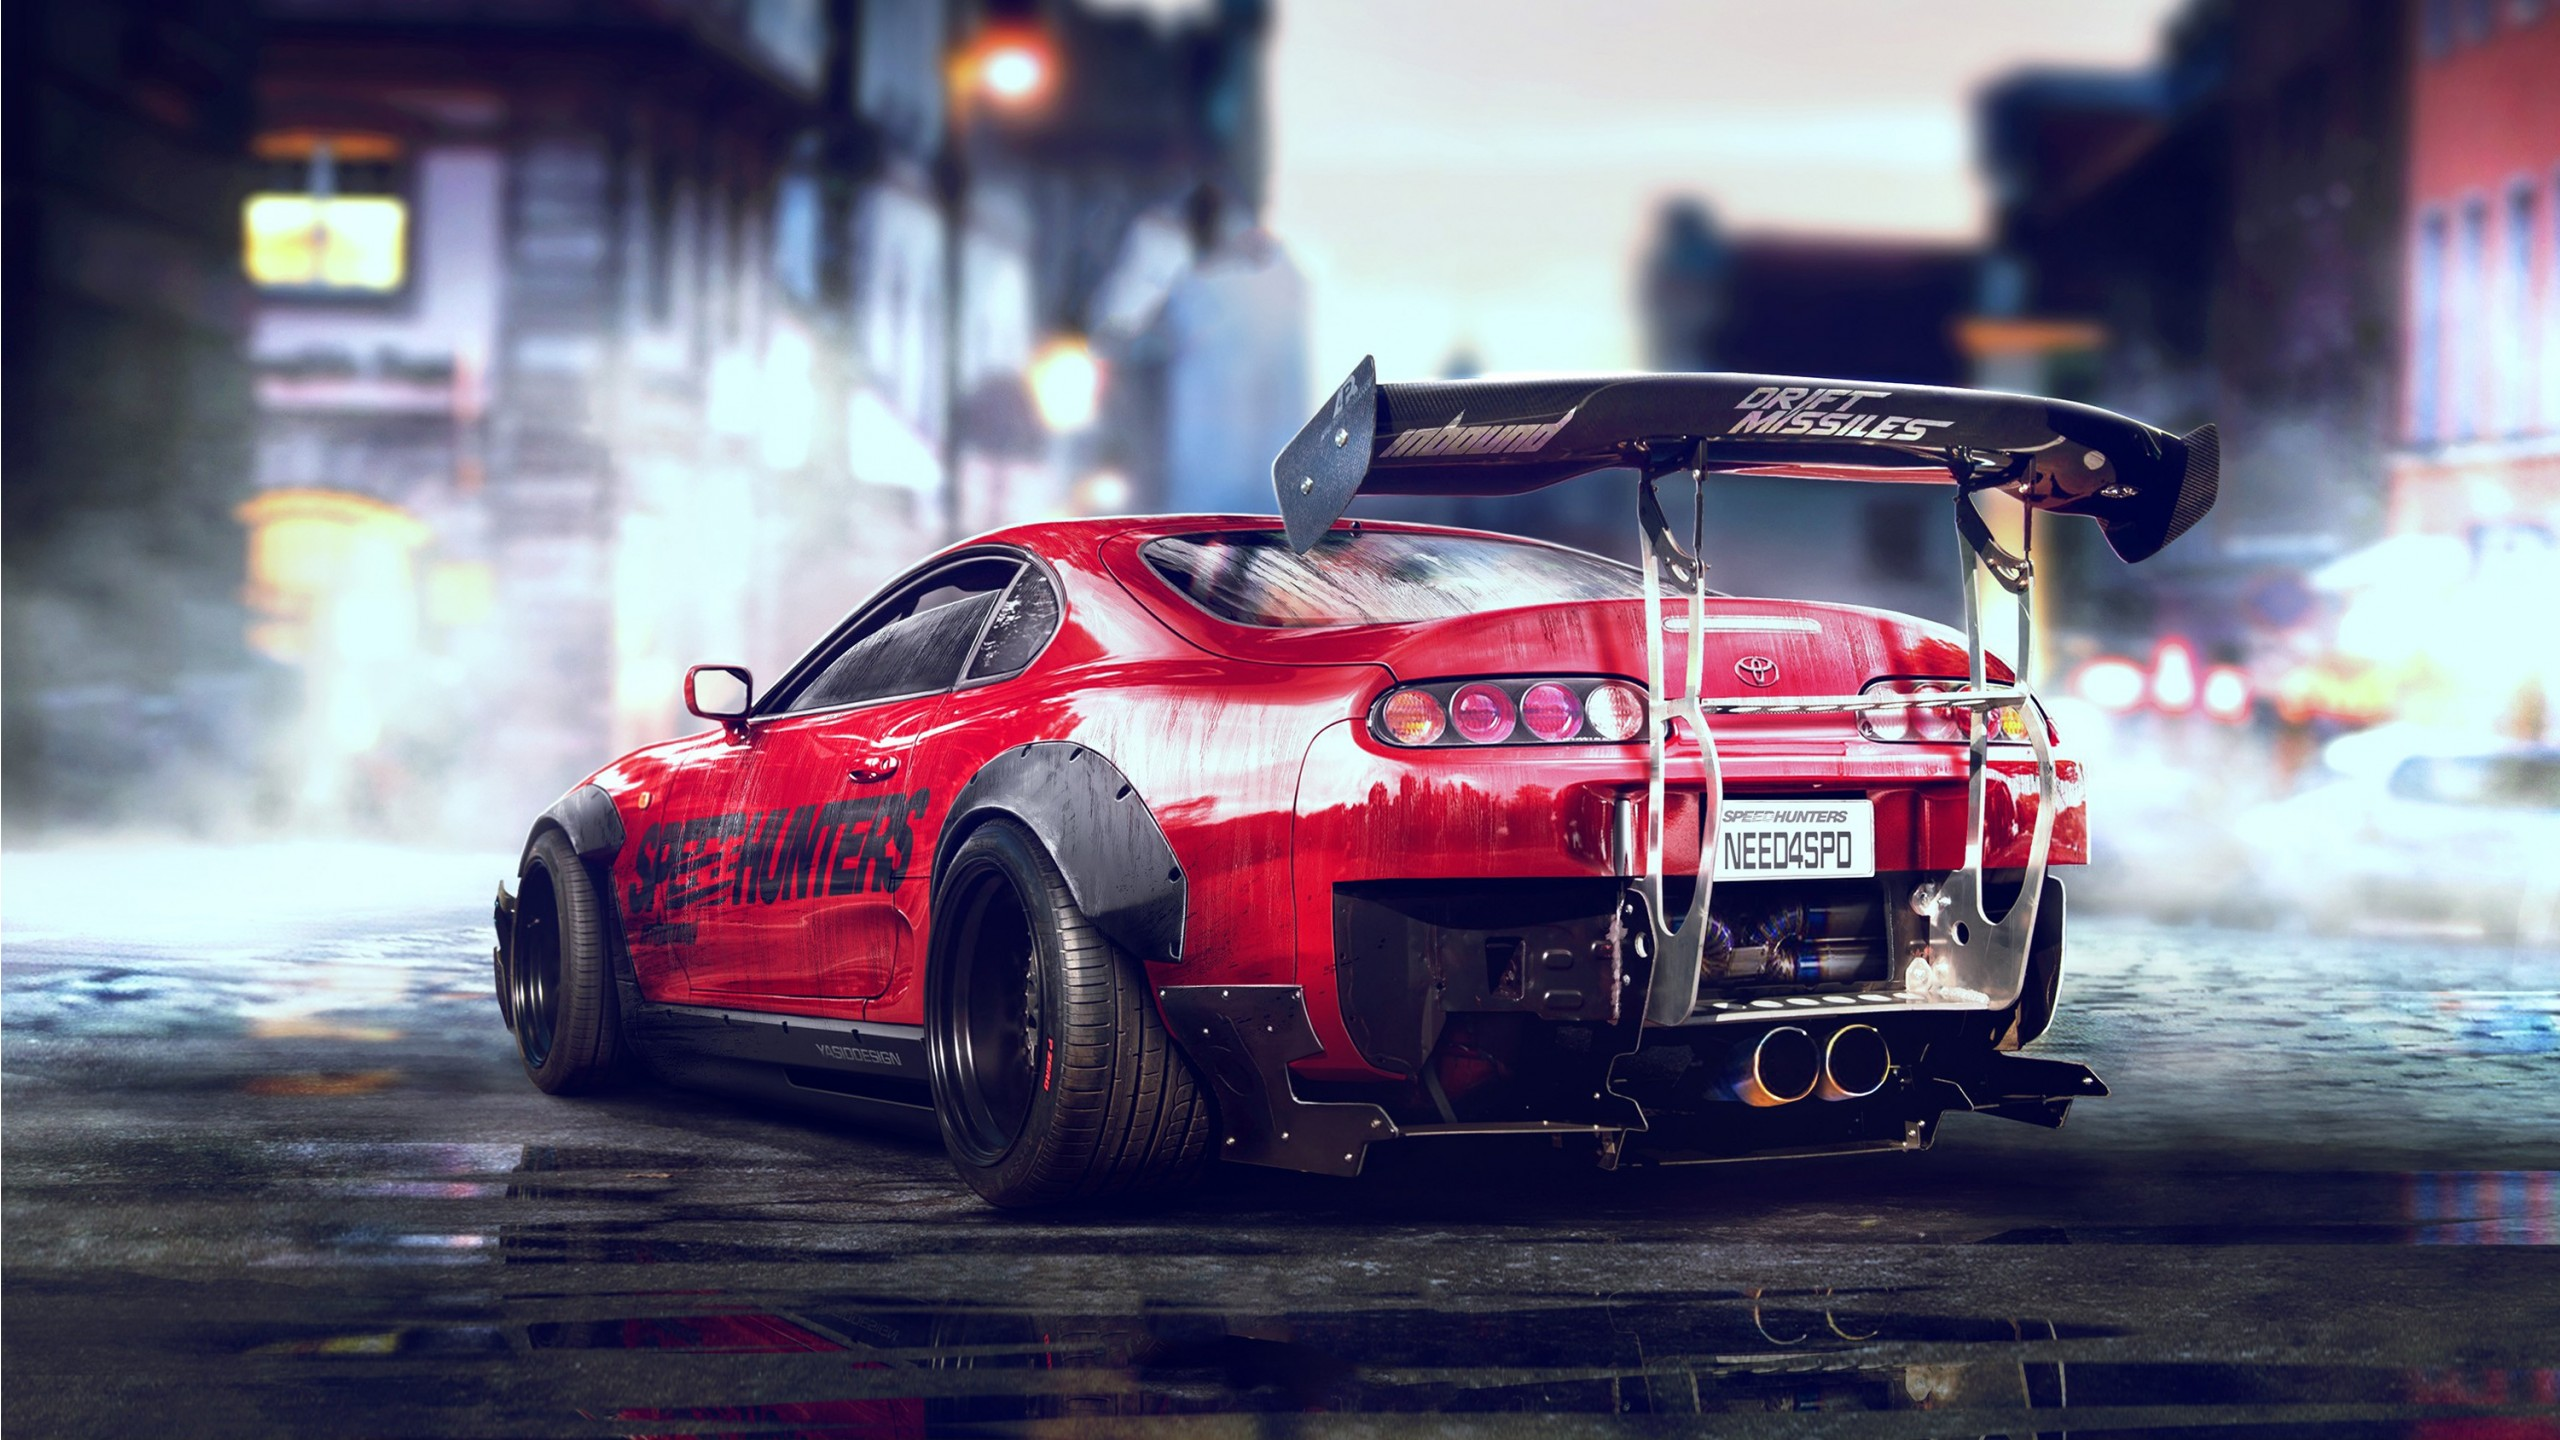 Toyota Supra Need For Speed Wallpaper Hd Car Wallpapers